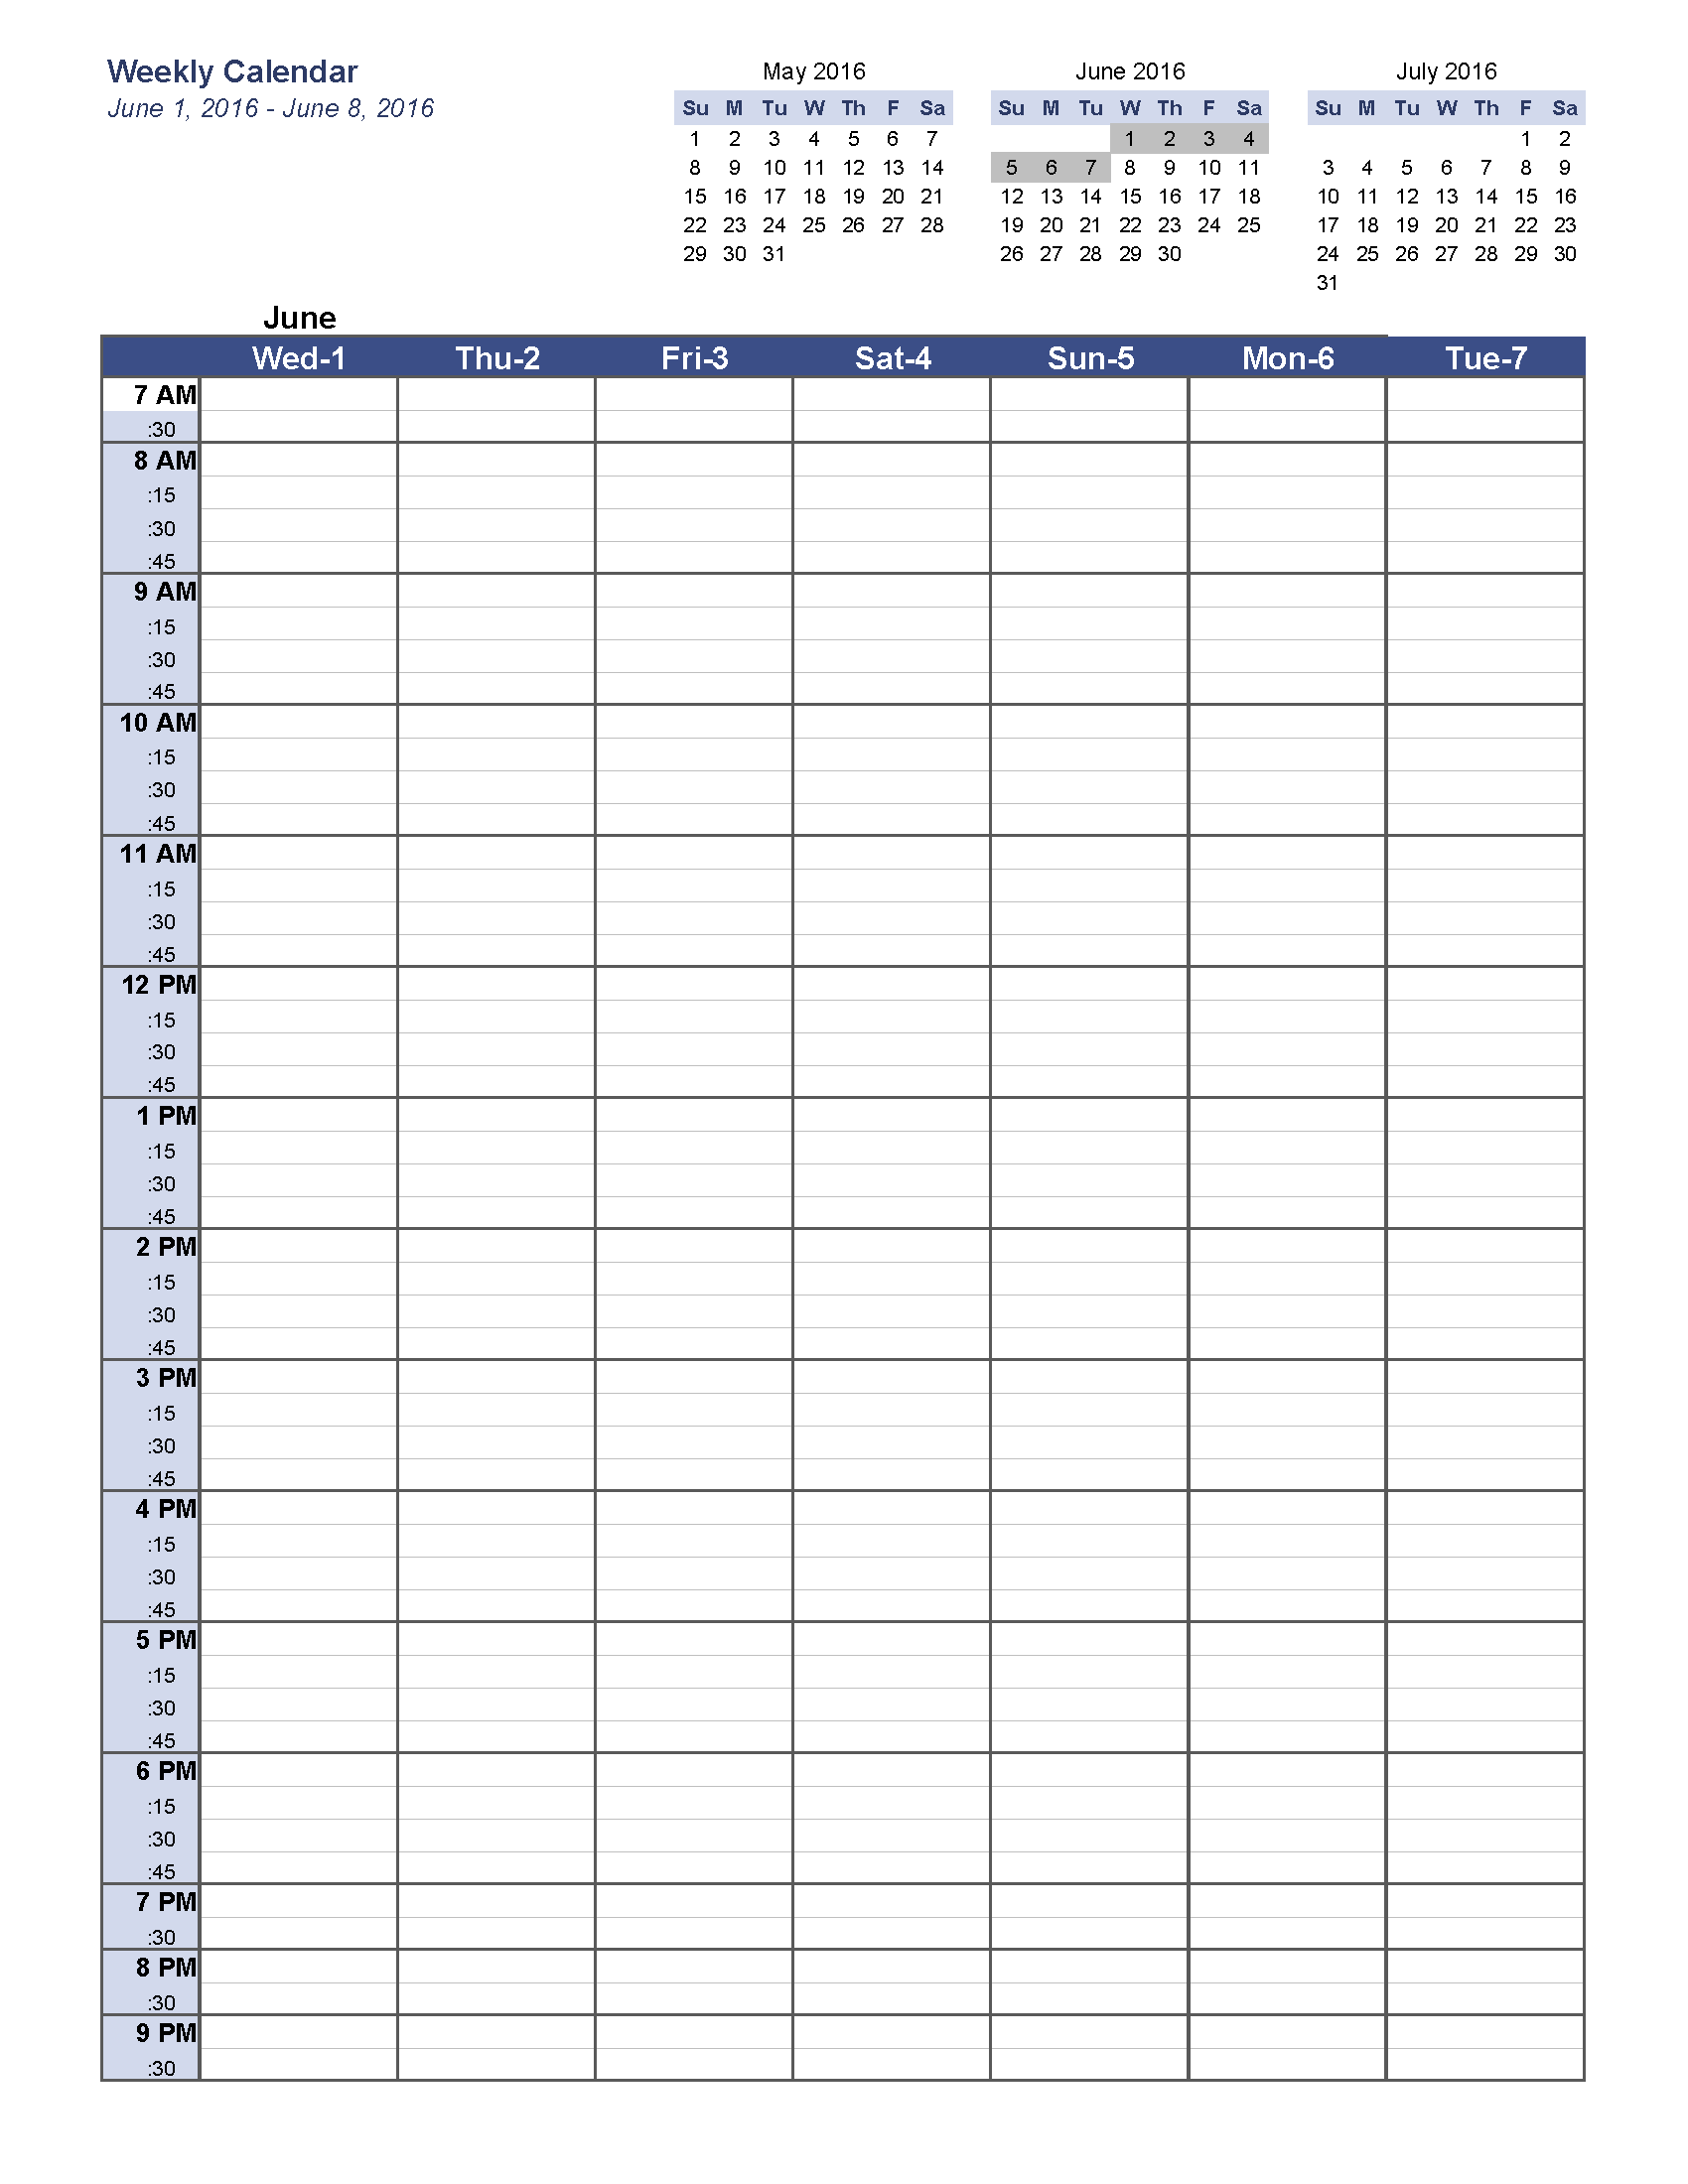 ... Weekly June 2016 Calendar Templates, June 2016 Editable Weekly